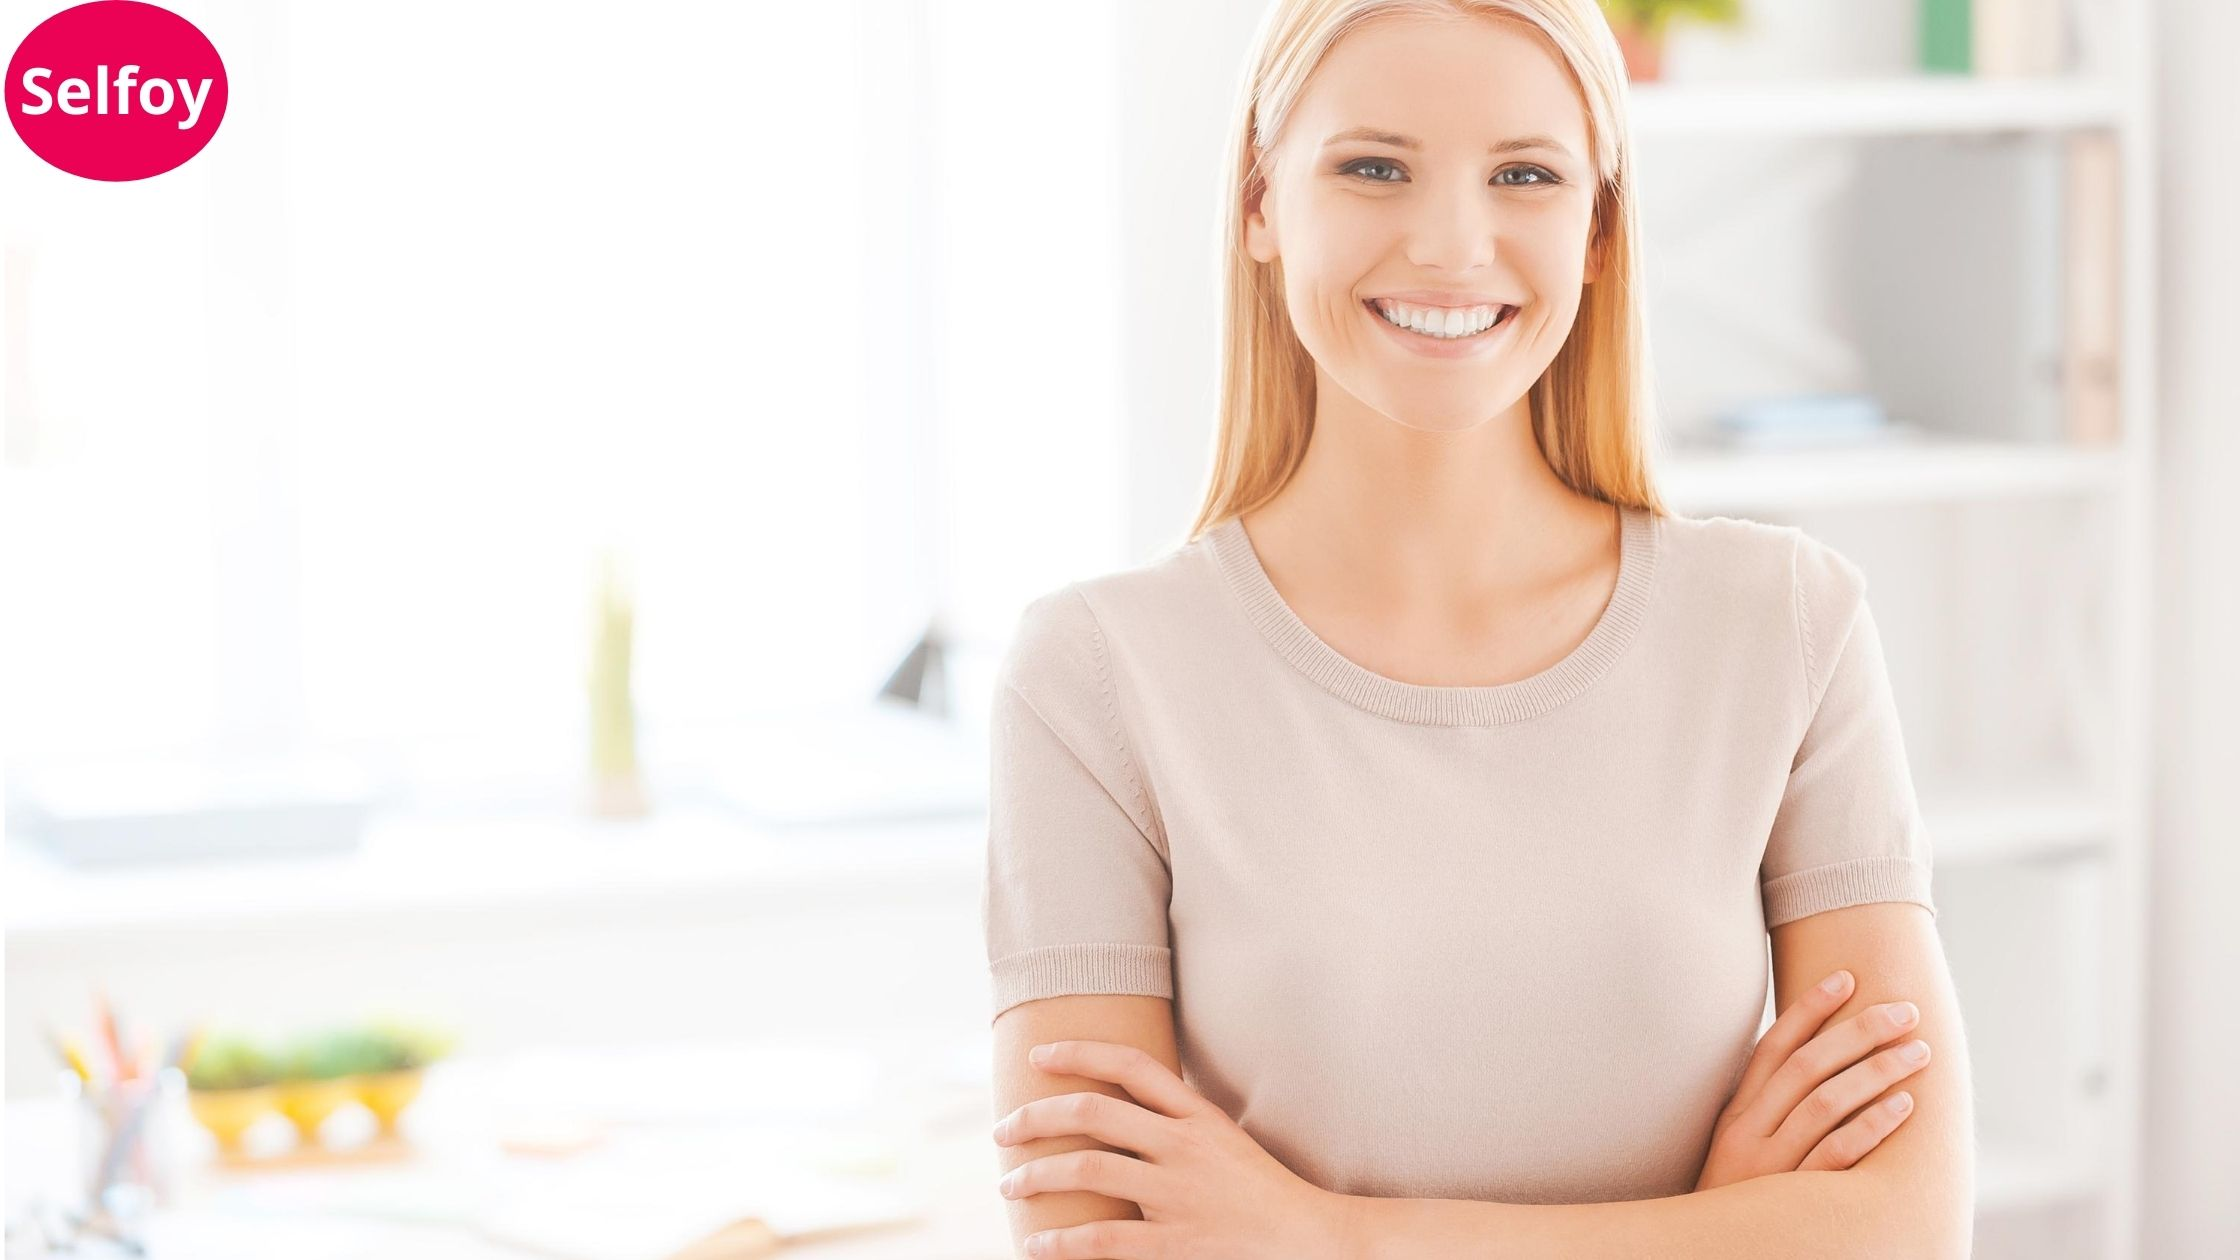 Woman is smiling and showing Good Personal Hygiene Helps to Develop Positive Self Esteem